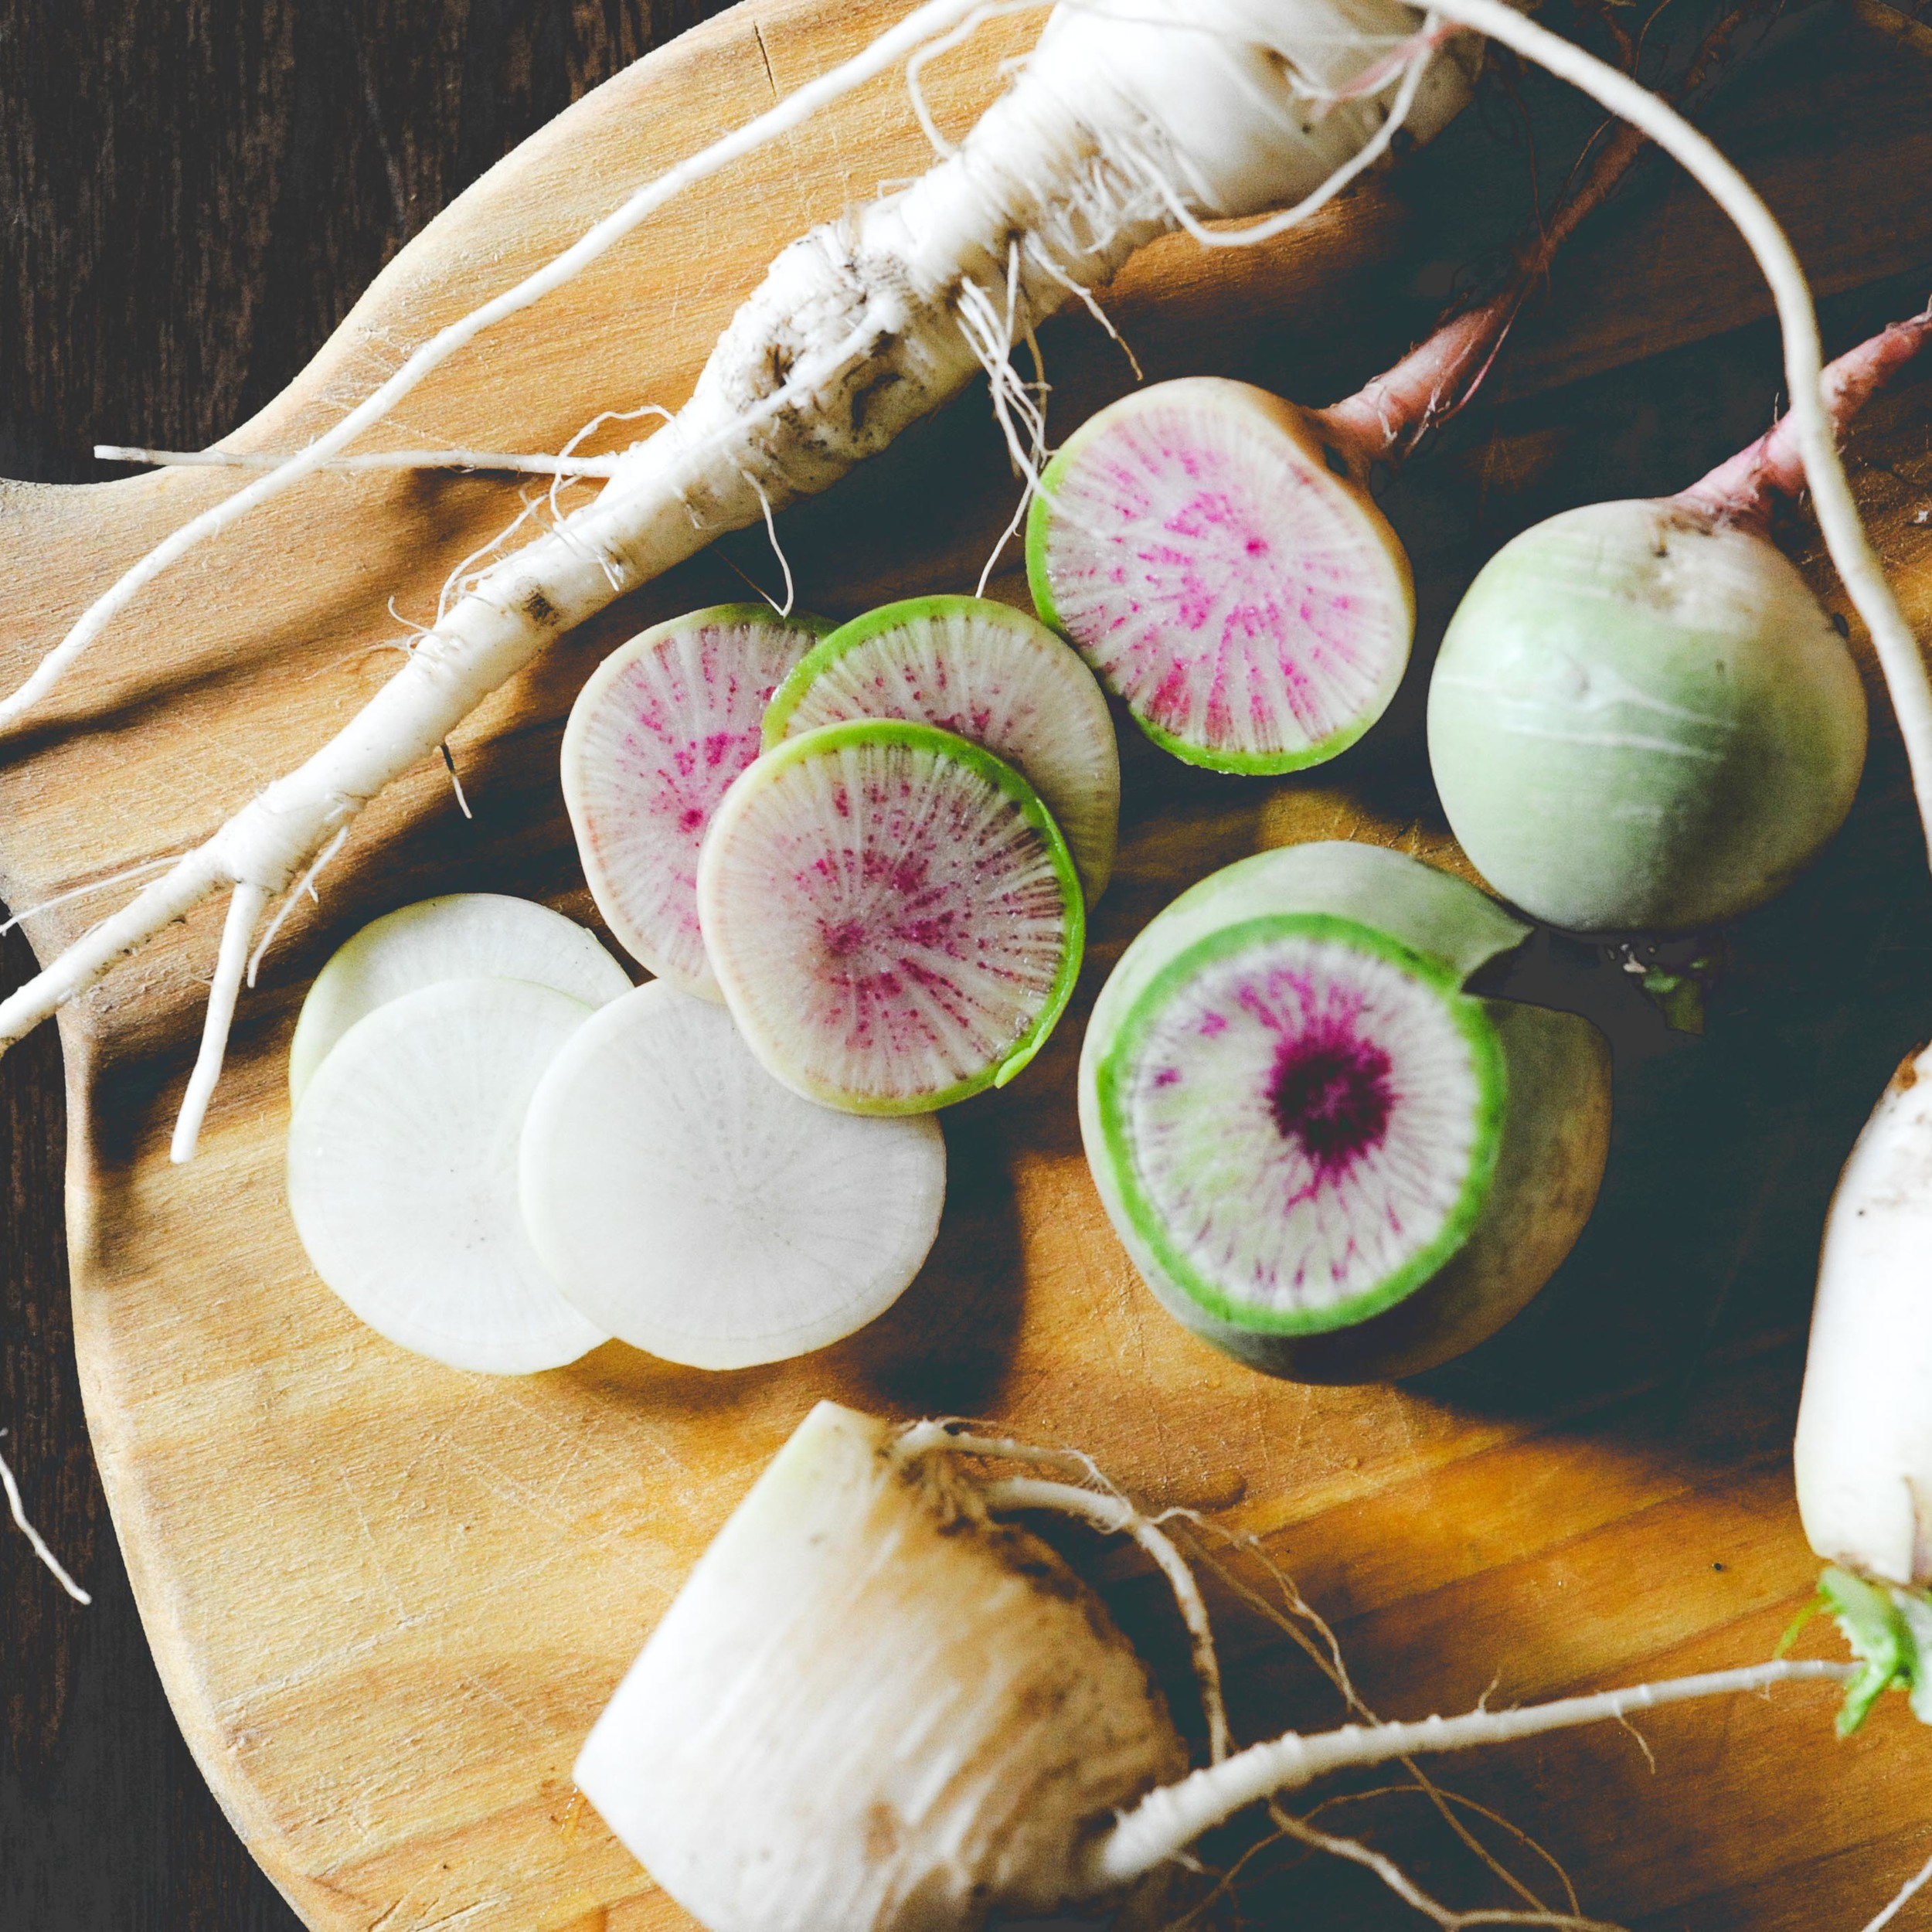 """Radish   French Breakfast, Misato Rose*, French Breakfast, Round Black Spanish, Cherriette  //  Frost tolerant. Misato Rose and Round Black Spanish are """"winter"""" varieties which means they grow slowly and are quick to bolt, therefor preferring fall growing conditions."""